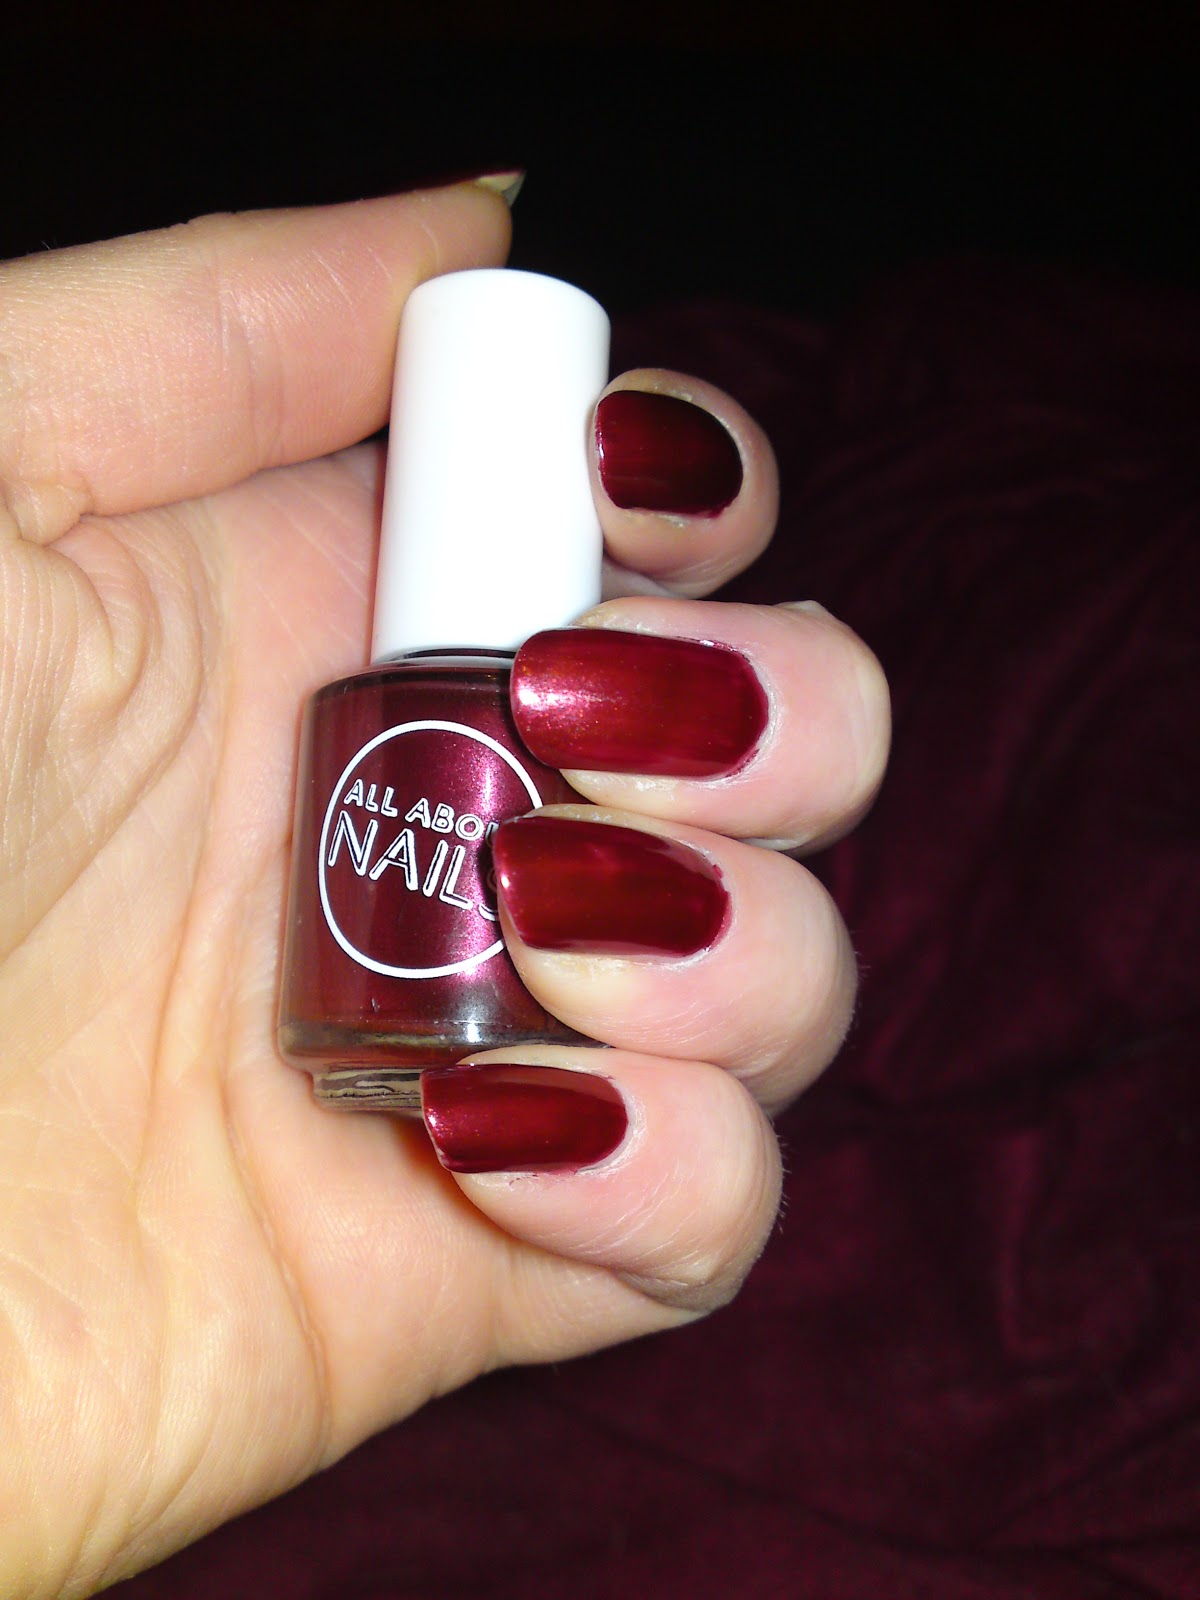 Economy Nails: All About Nails Wild Cherry